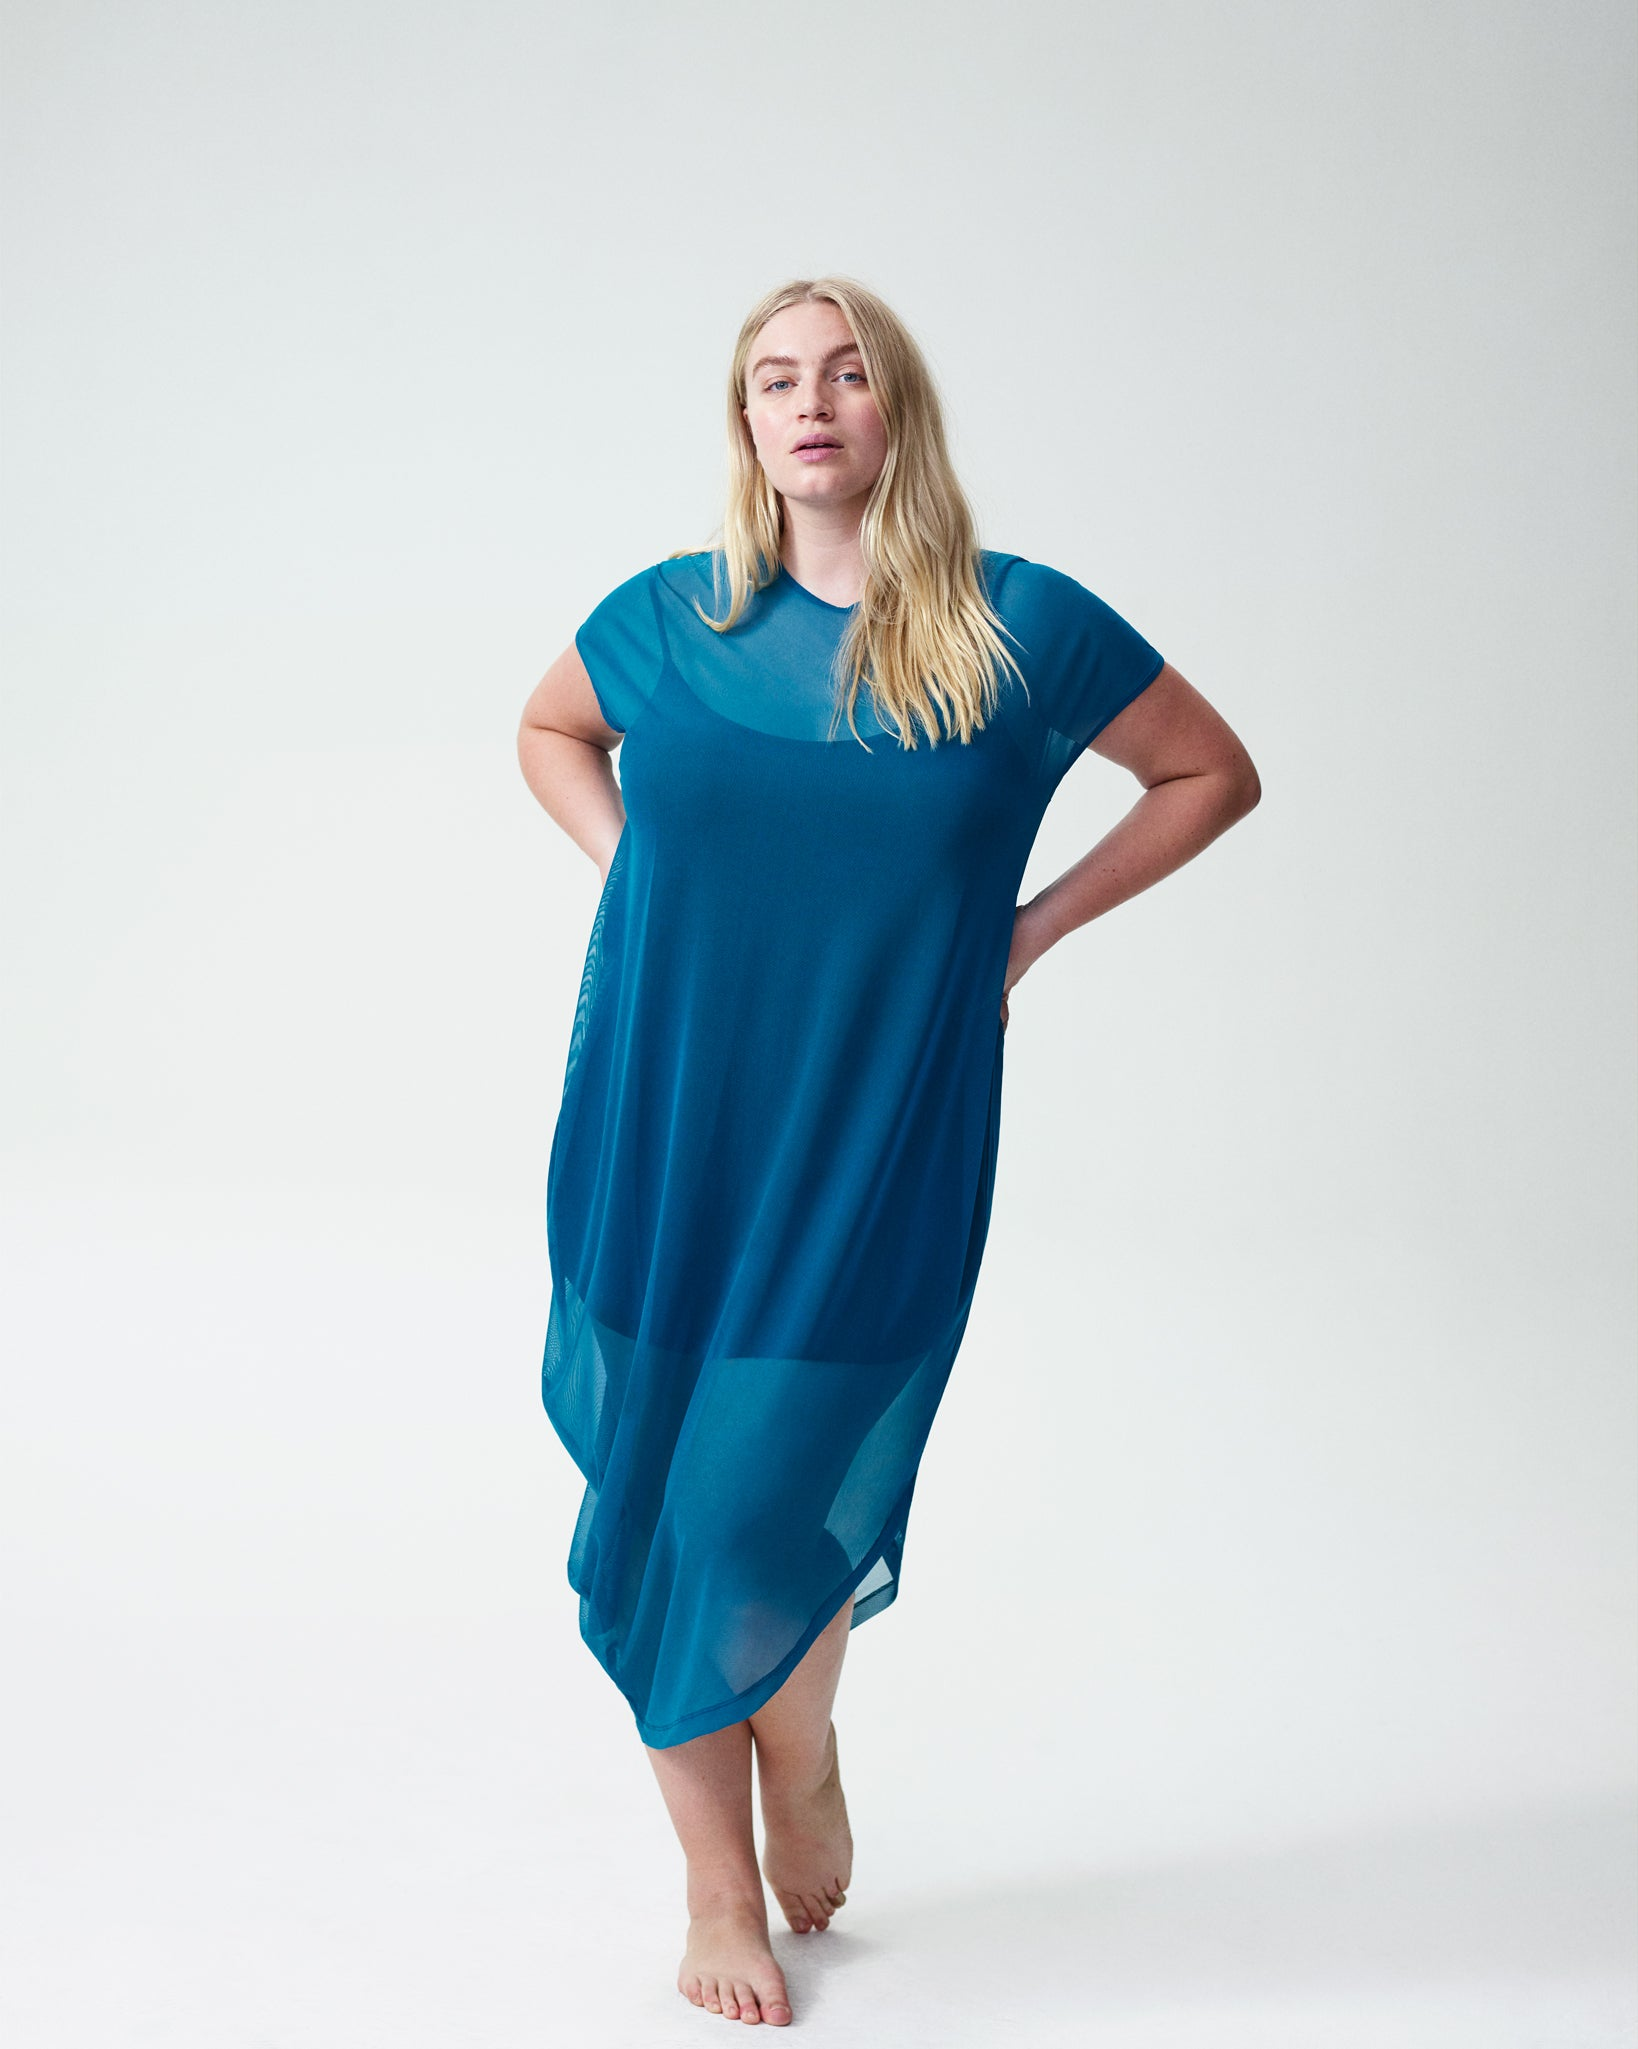 Geneva Fog Dress - Marine